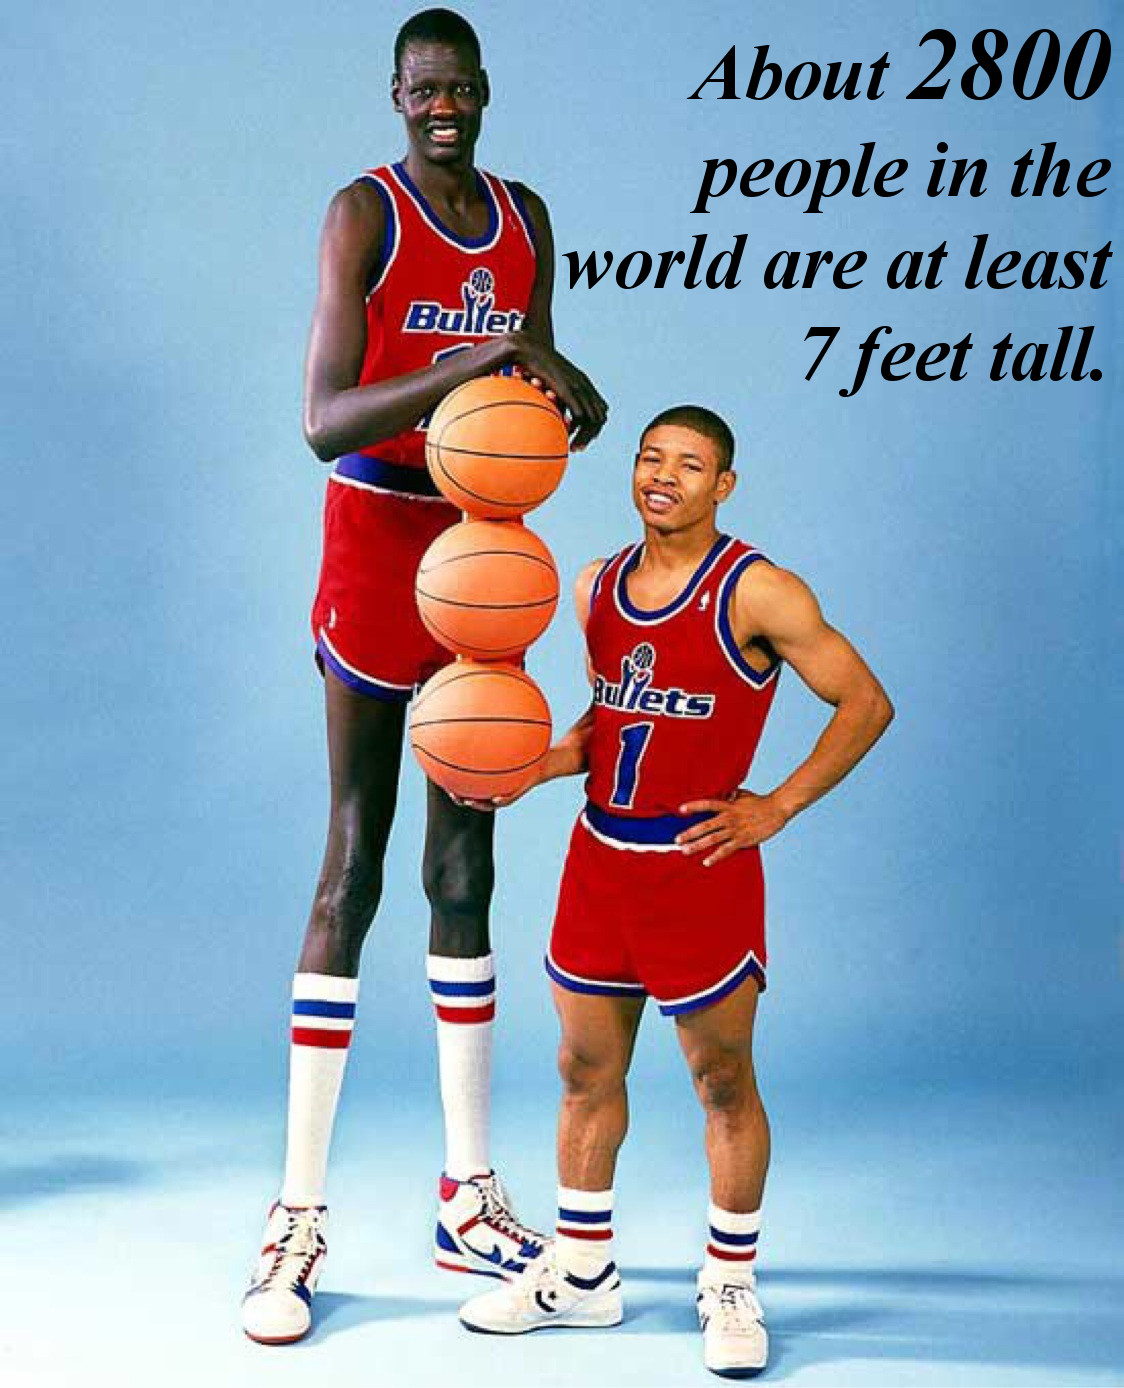 How Many 7 Footers Are in the World?